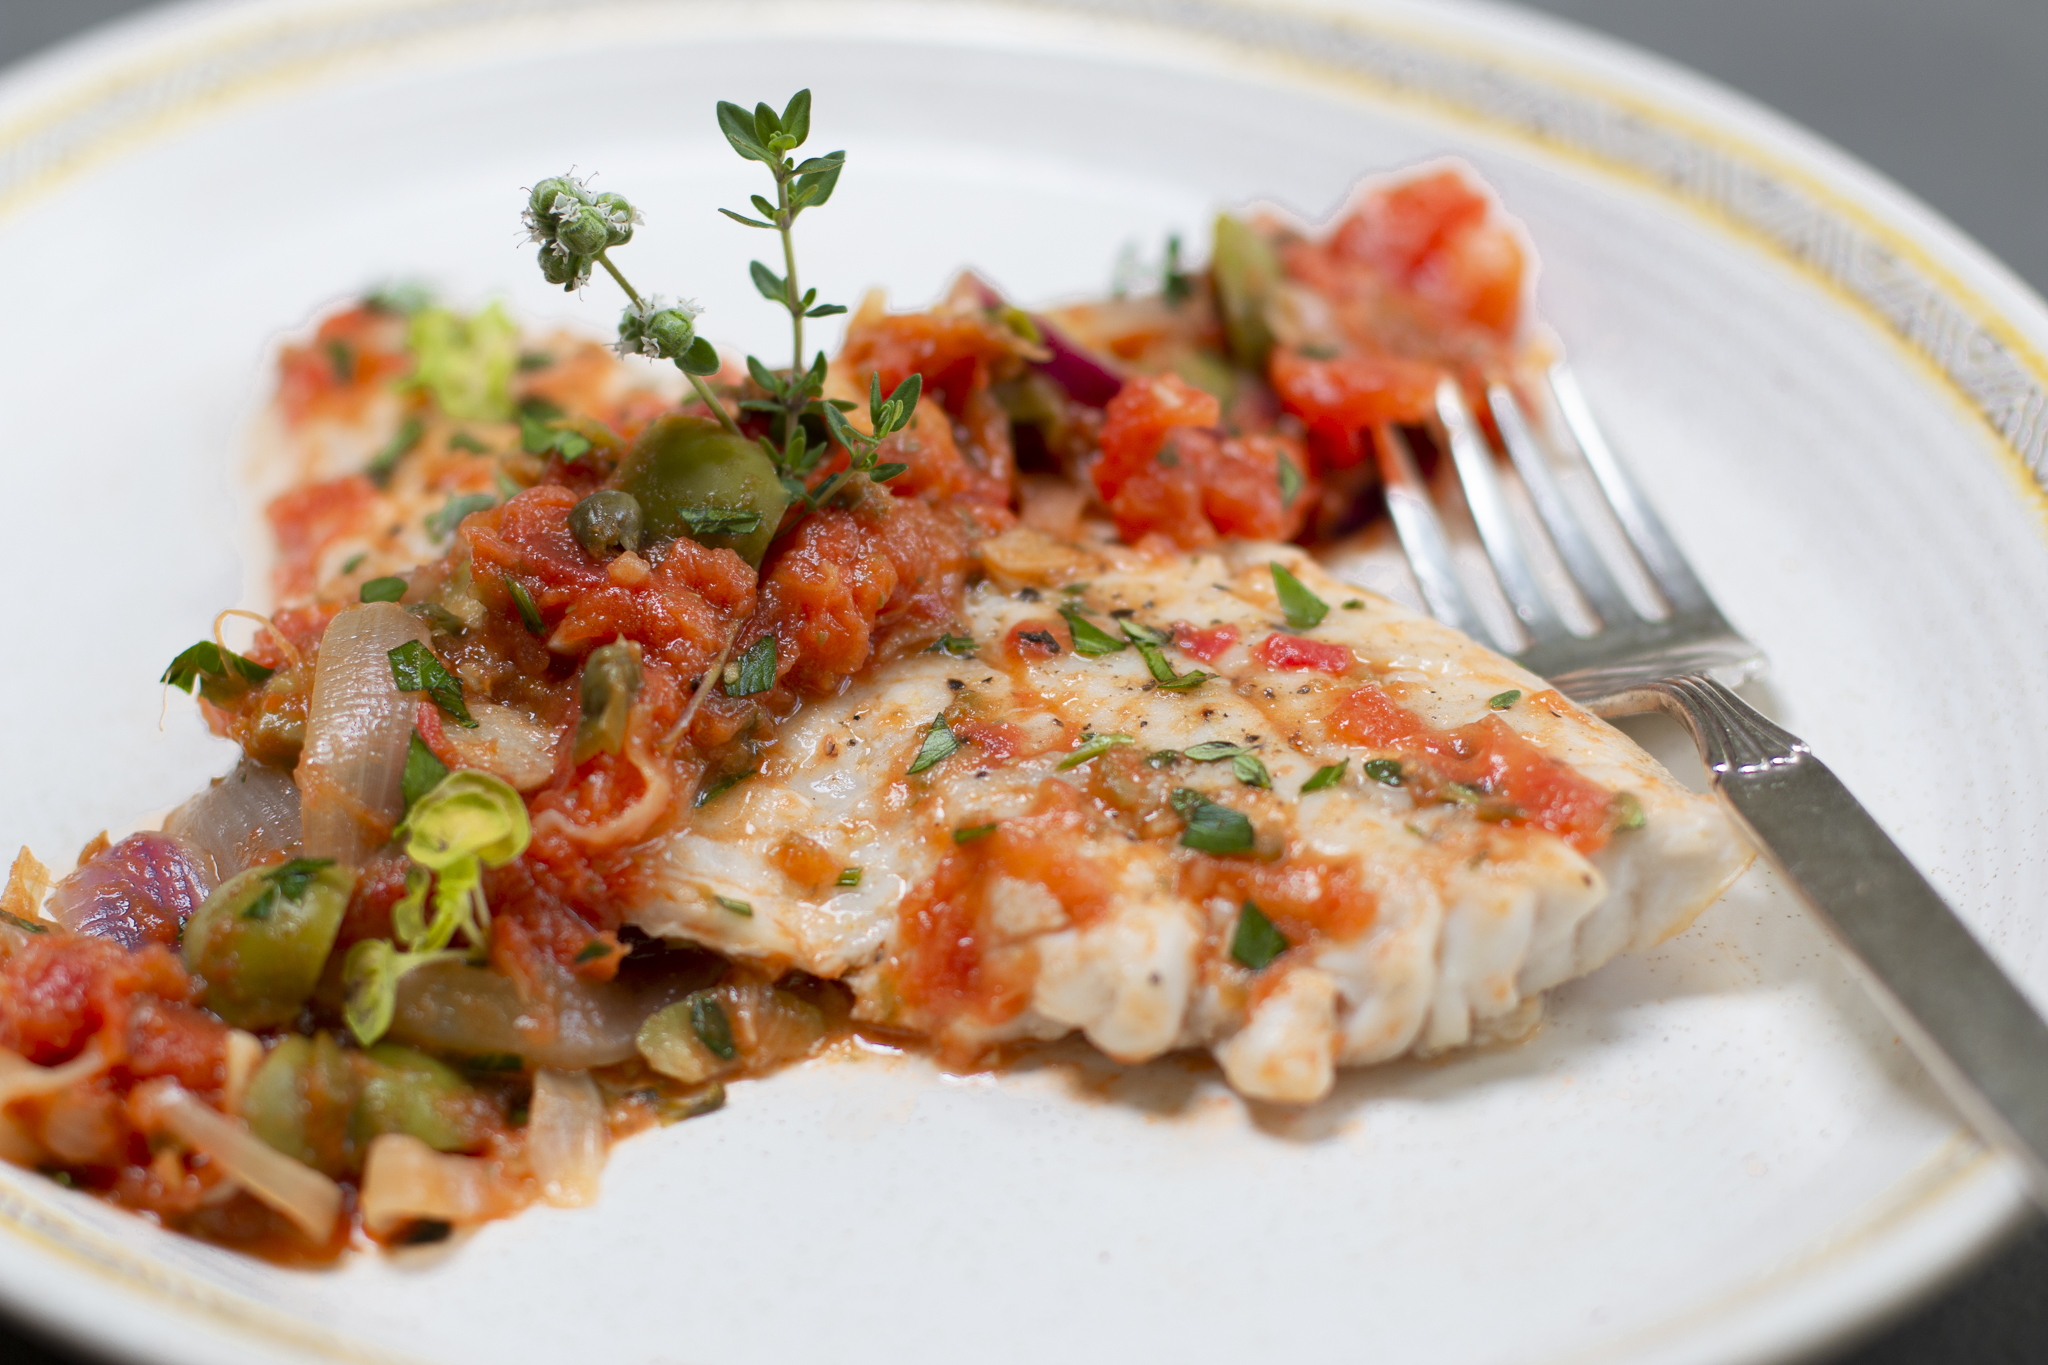 Karen's Veracruz-Style Snapper with Fresh Garden Tomatoes